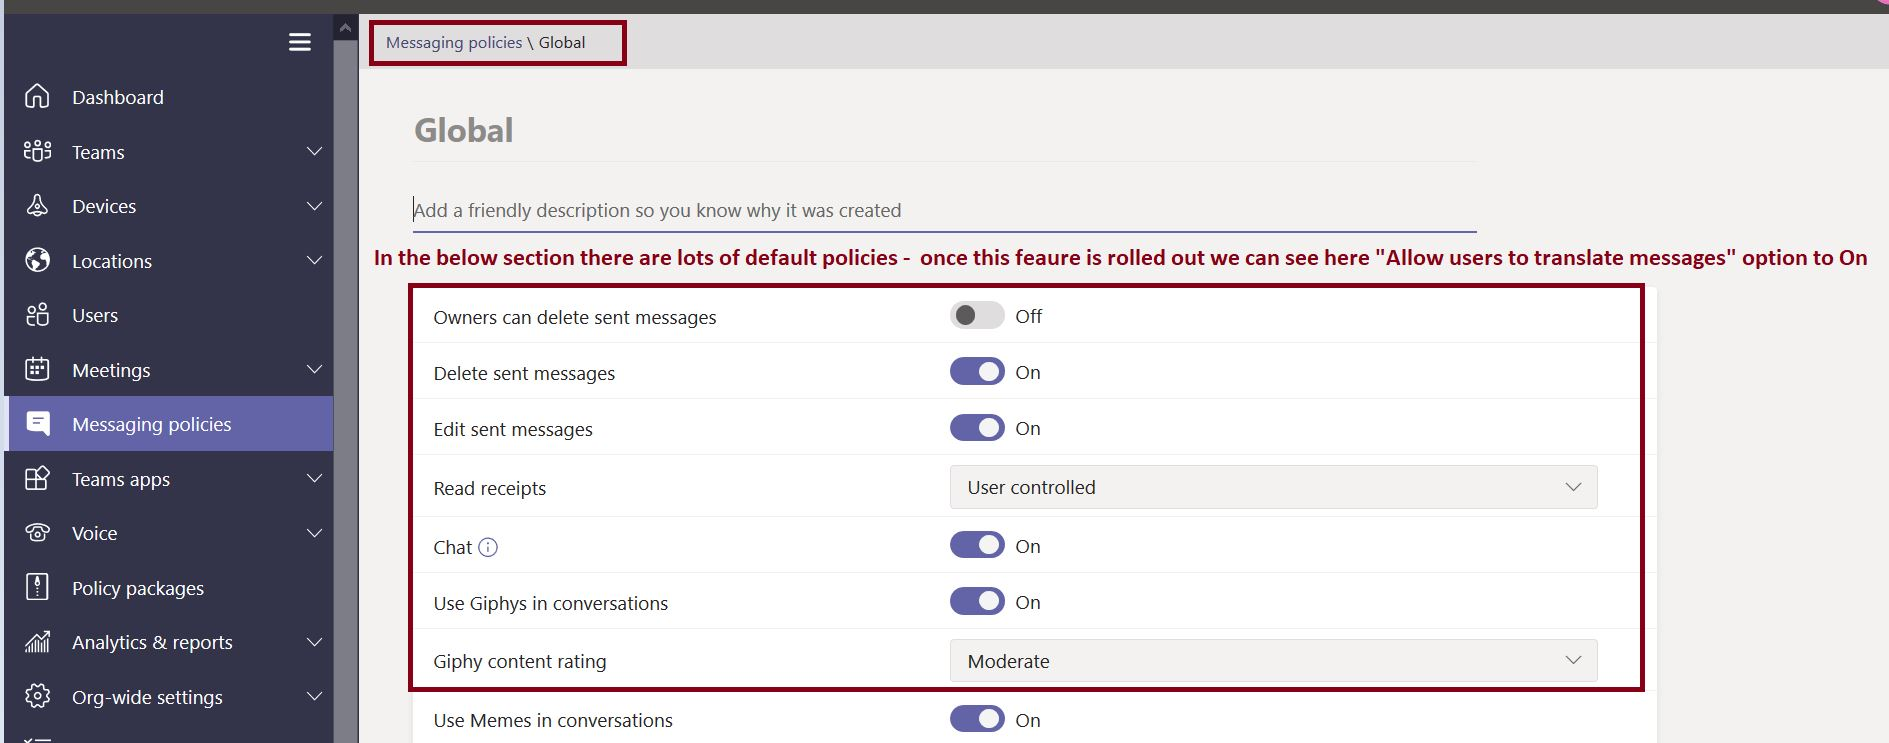 Allow users to translate messages option to on in Microsoft Teams admin center messaging policies